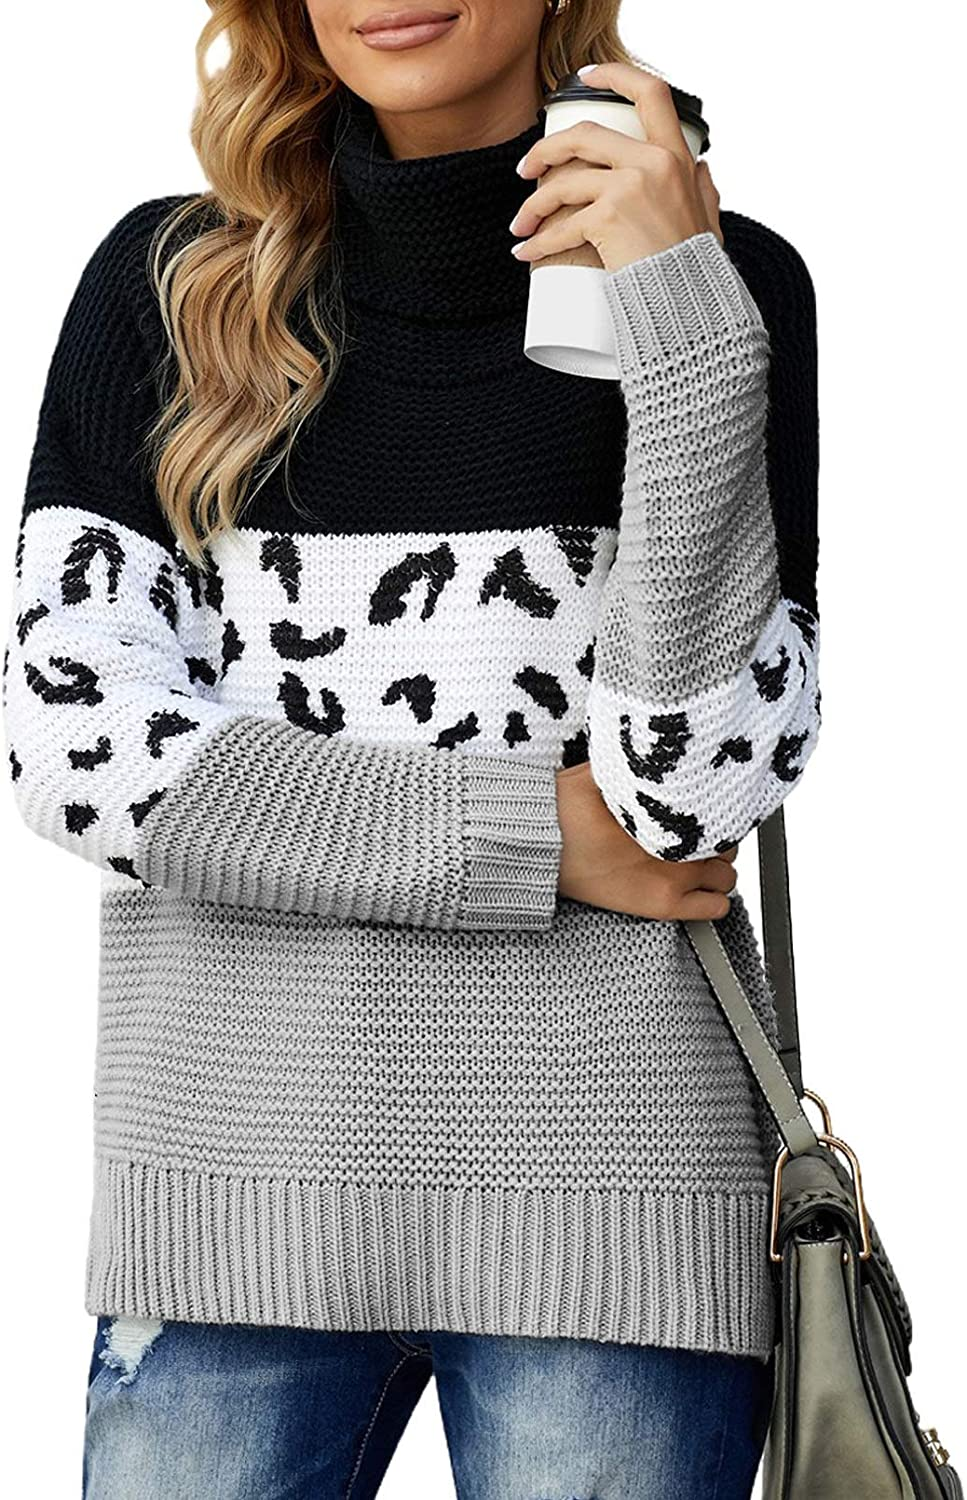 BLENCOT Womens Casual Turtleneck Sweater Tops Long Sleeve Pullover Knit Sweaters